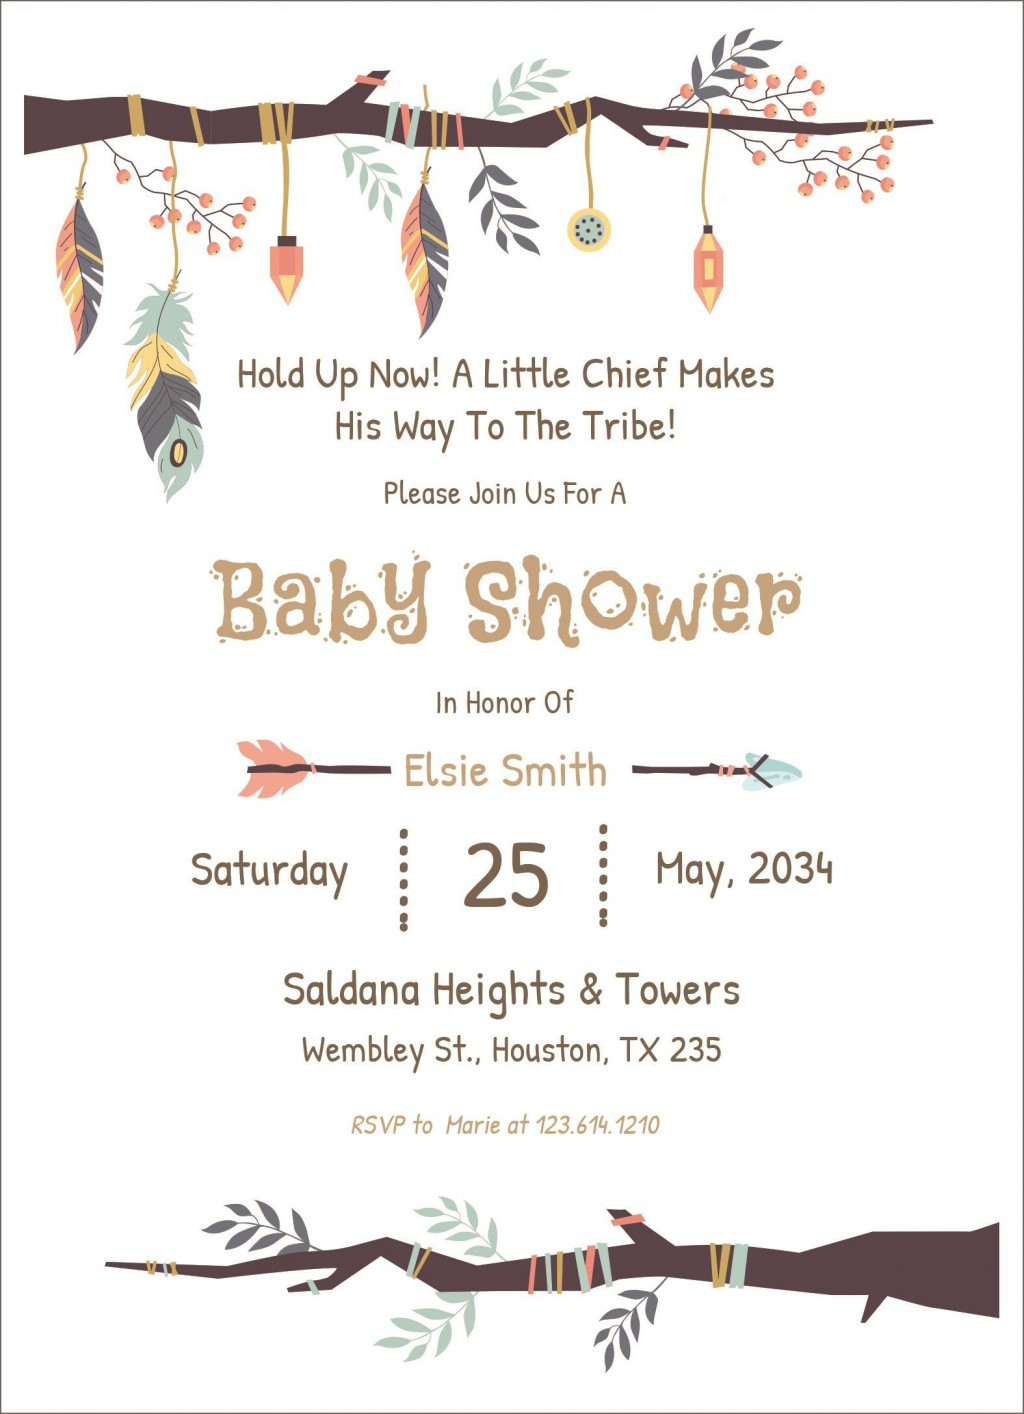 005 Amazing Free Baby Shower Card Template For Word High Def Large